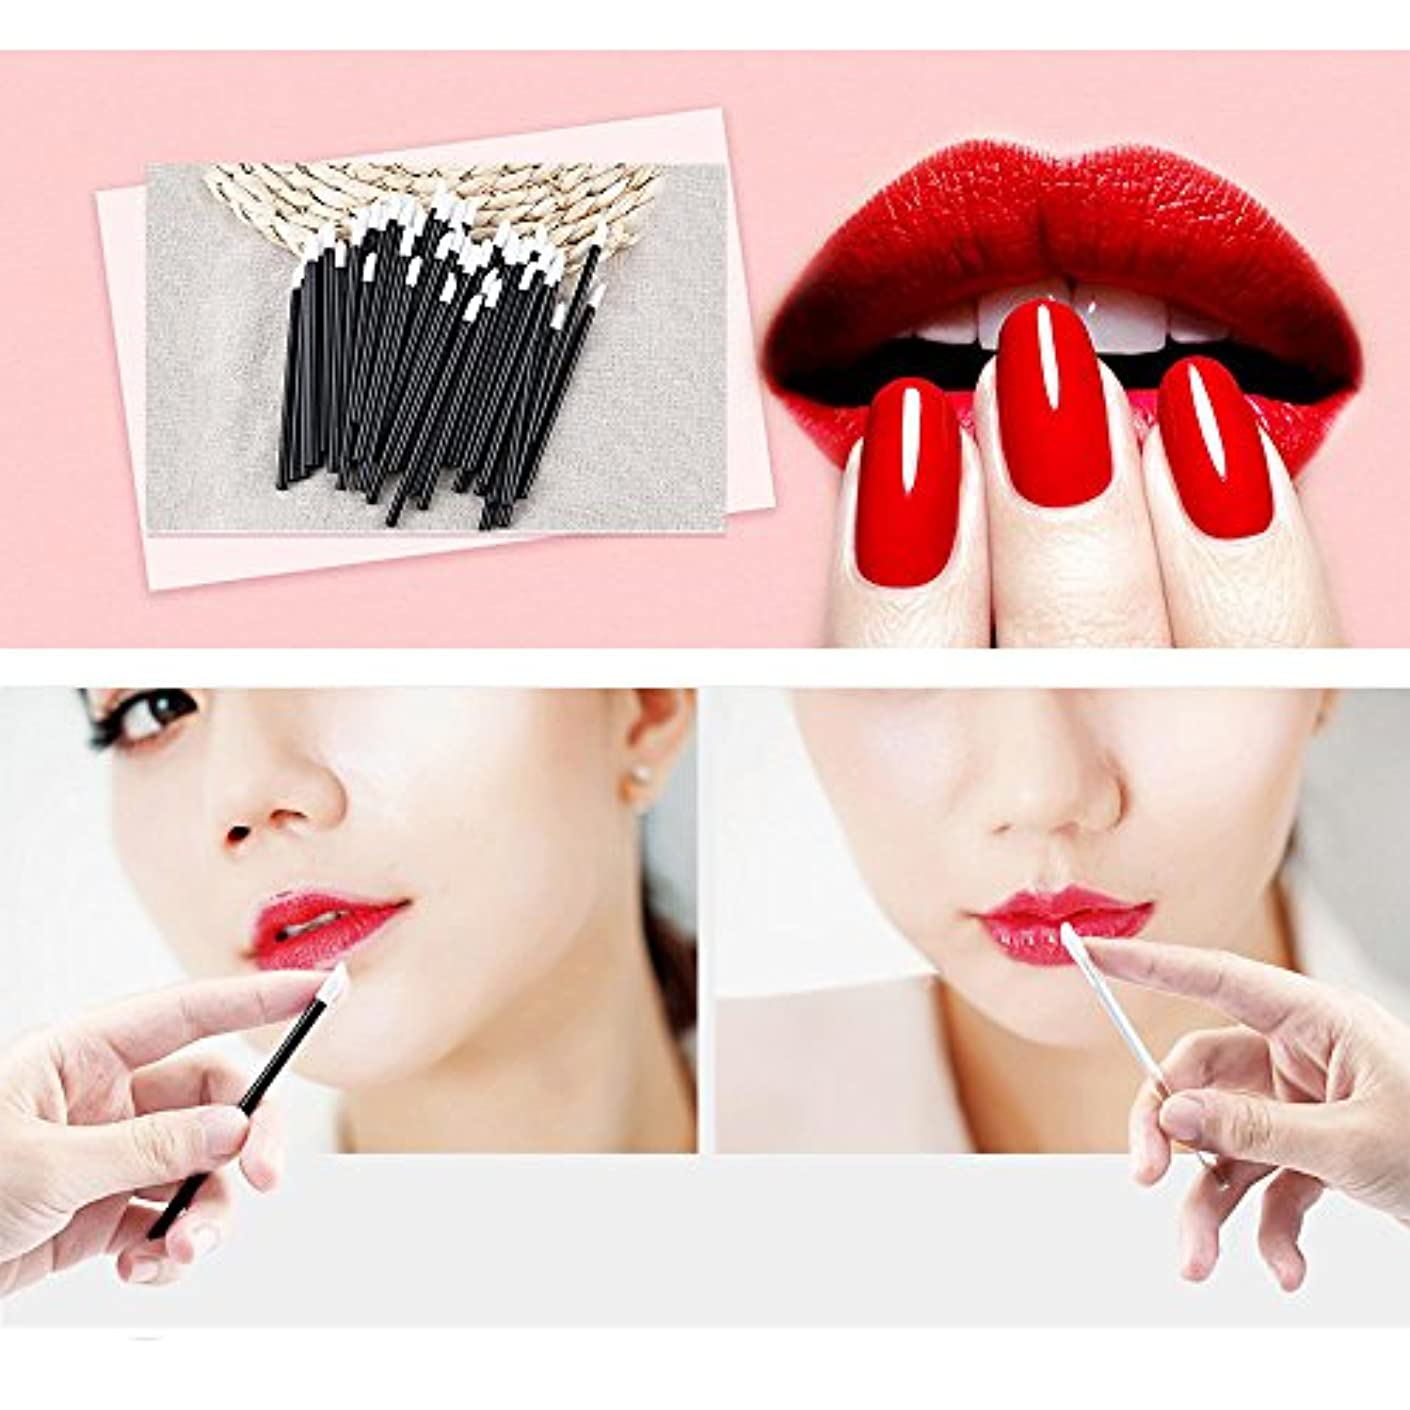 Women Accessories 100 PCS Disposable Lip Brush Wholesale Gloss Wands Applicator Perfect Best Make Up Tool HS